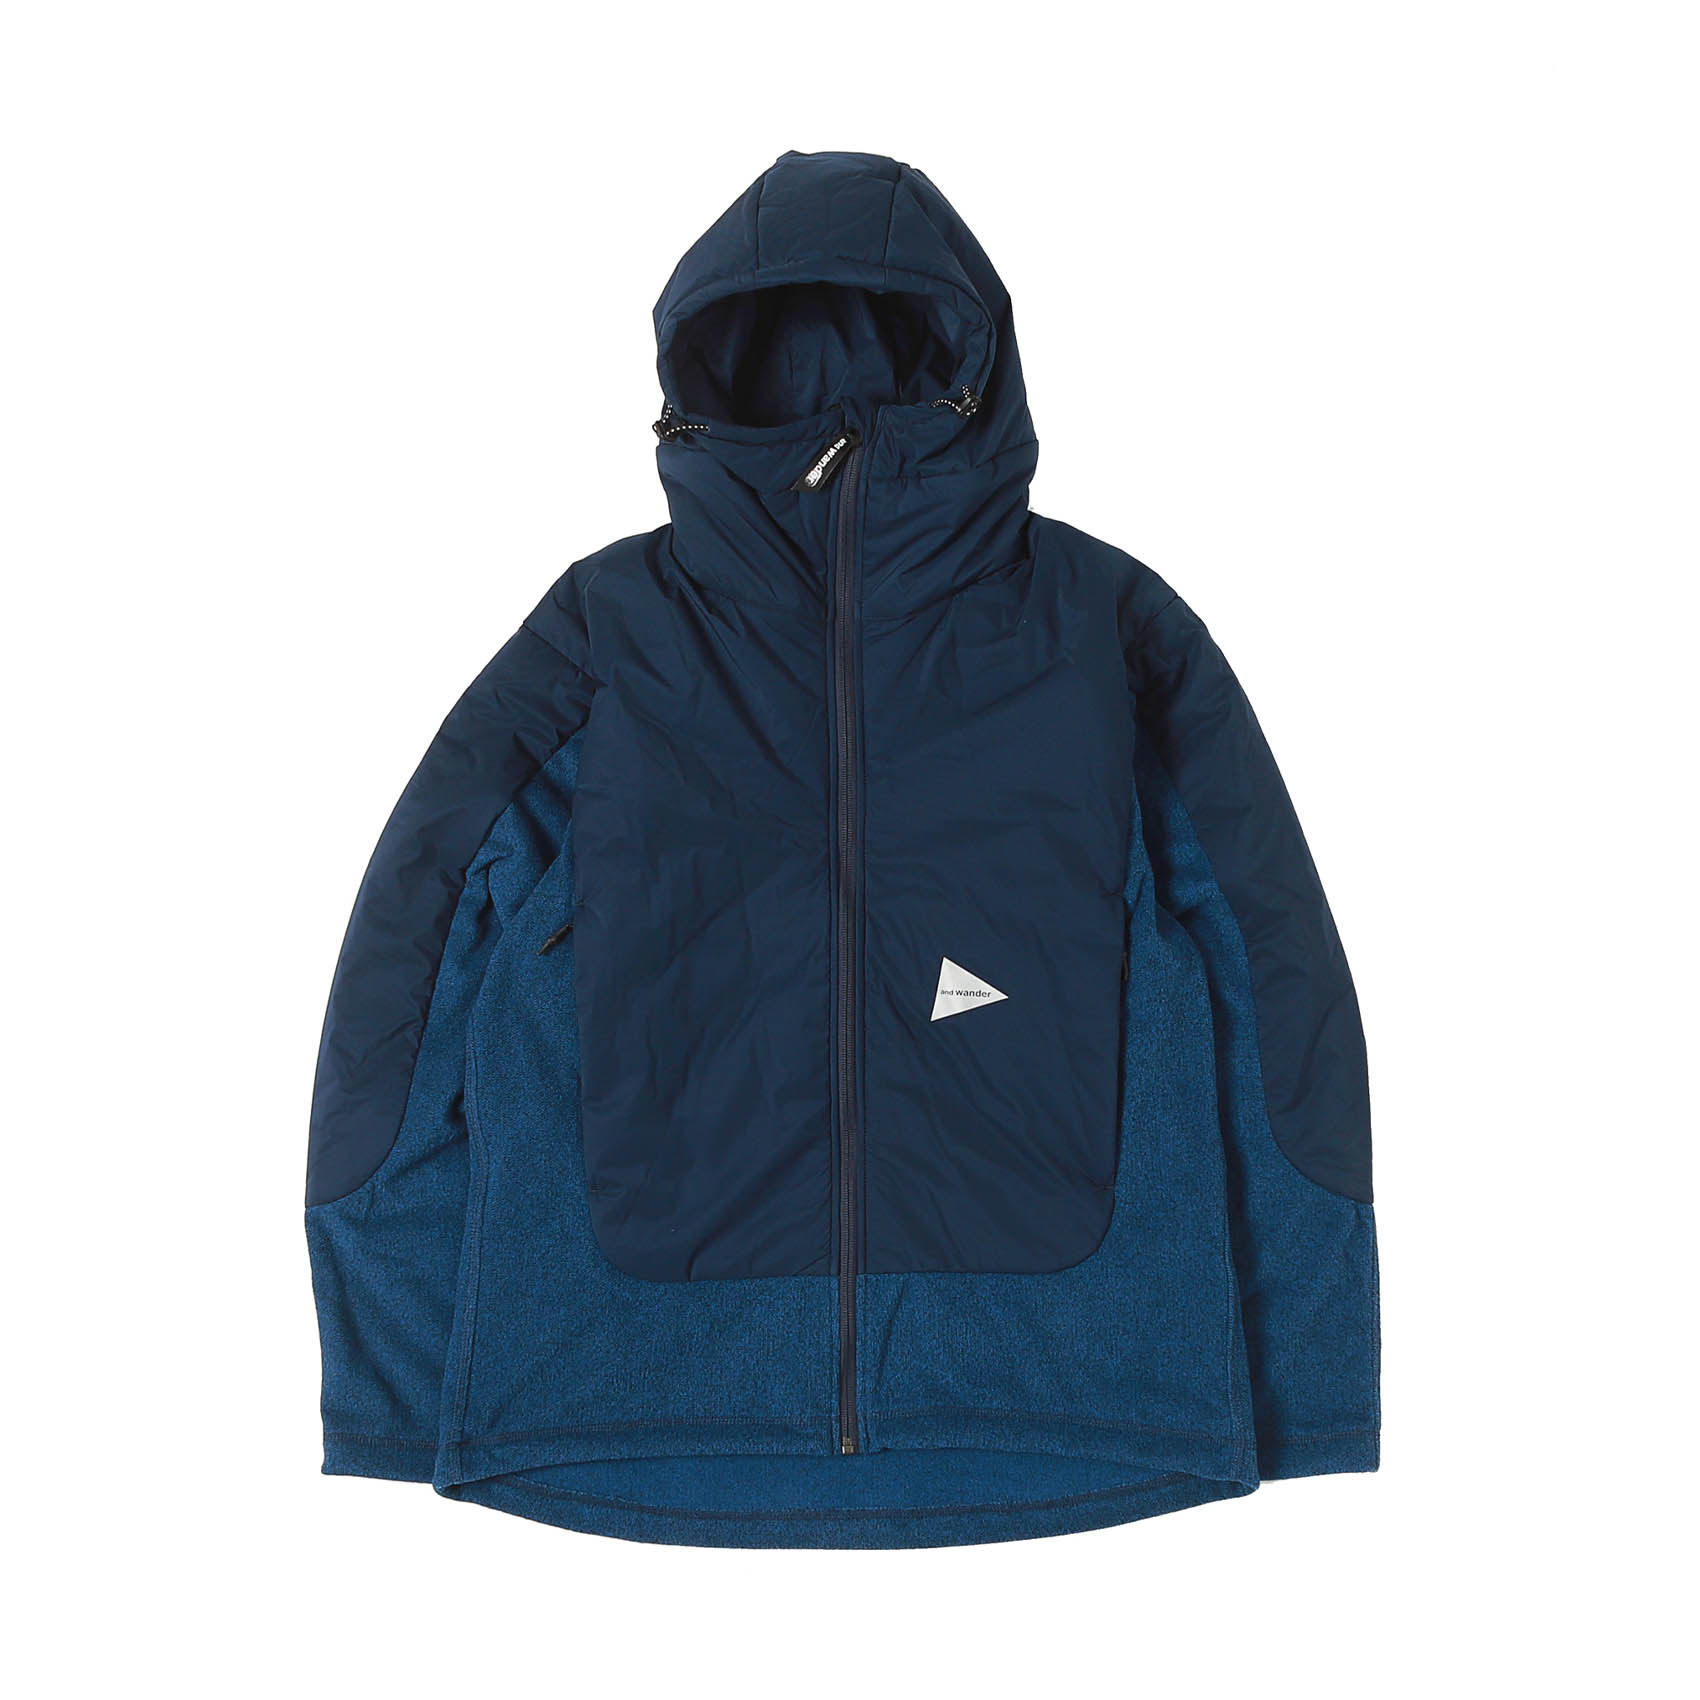 TOP FLEECE JACKET - NAVY